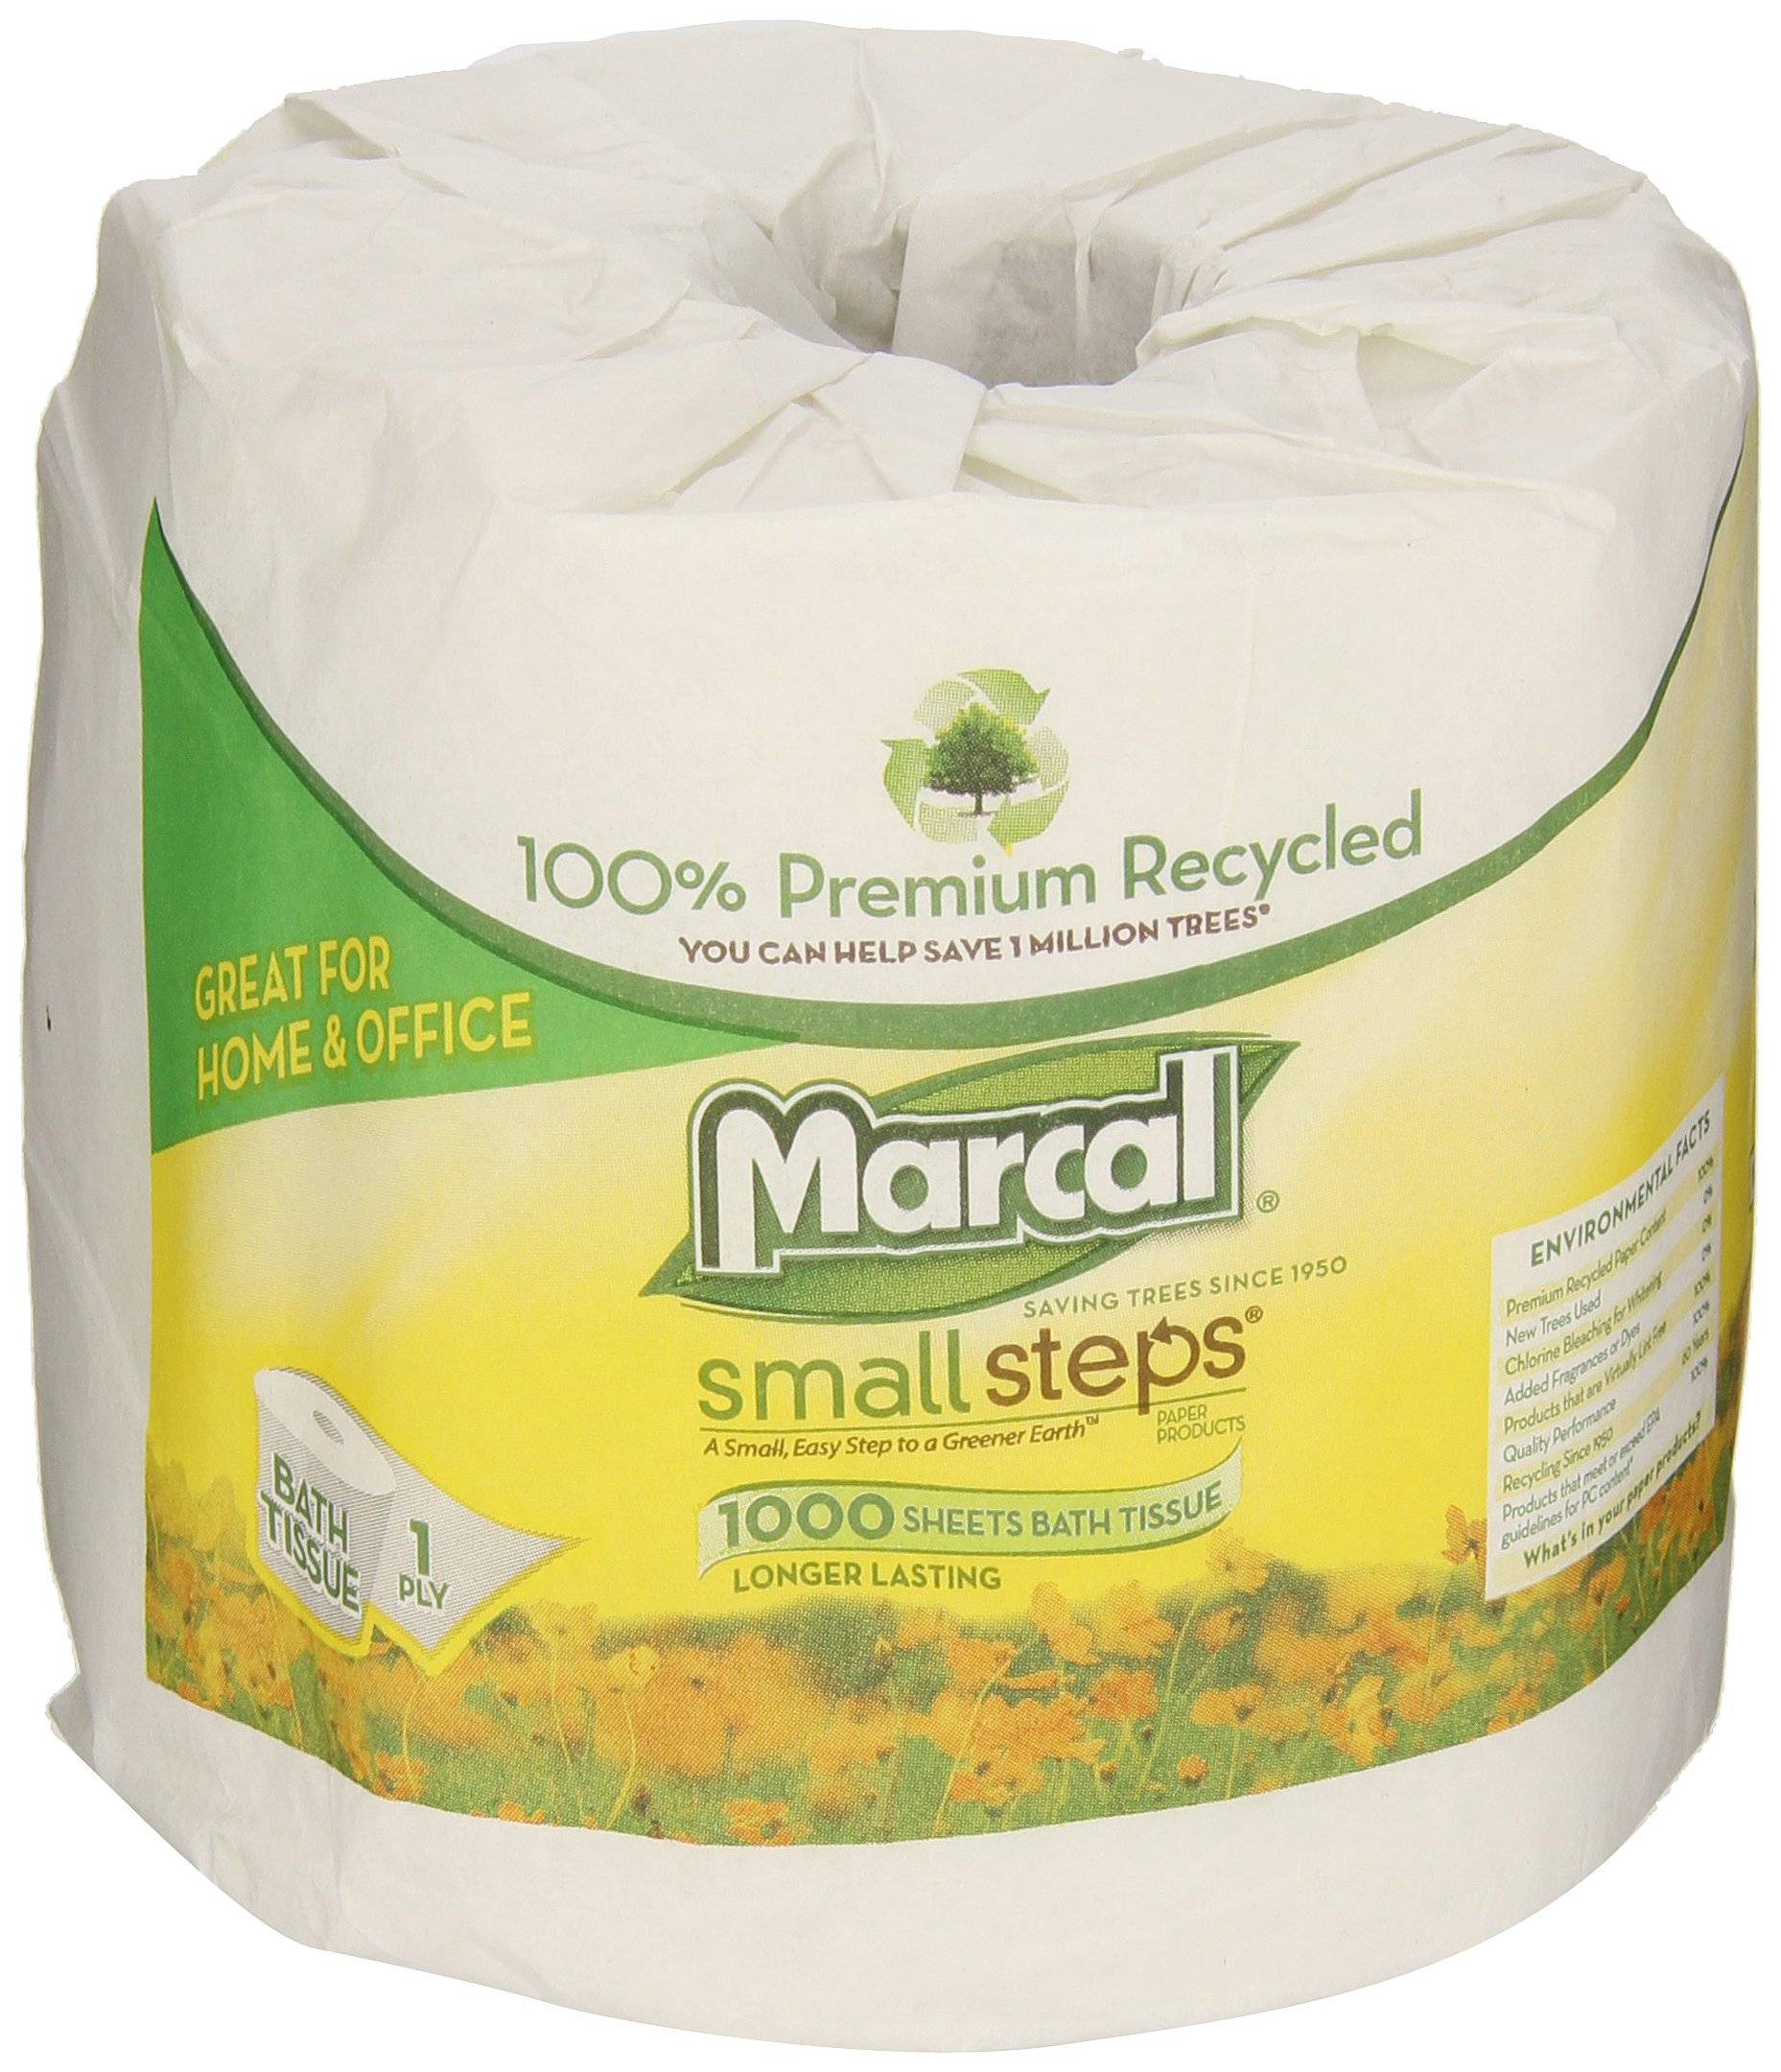 Marcal Toilet Paper 04415 - yellow wrapper